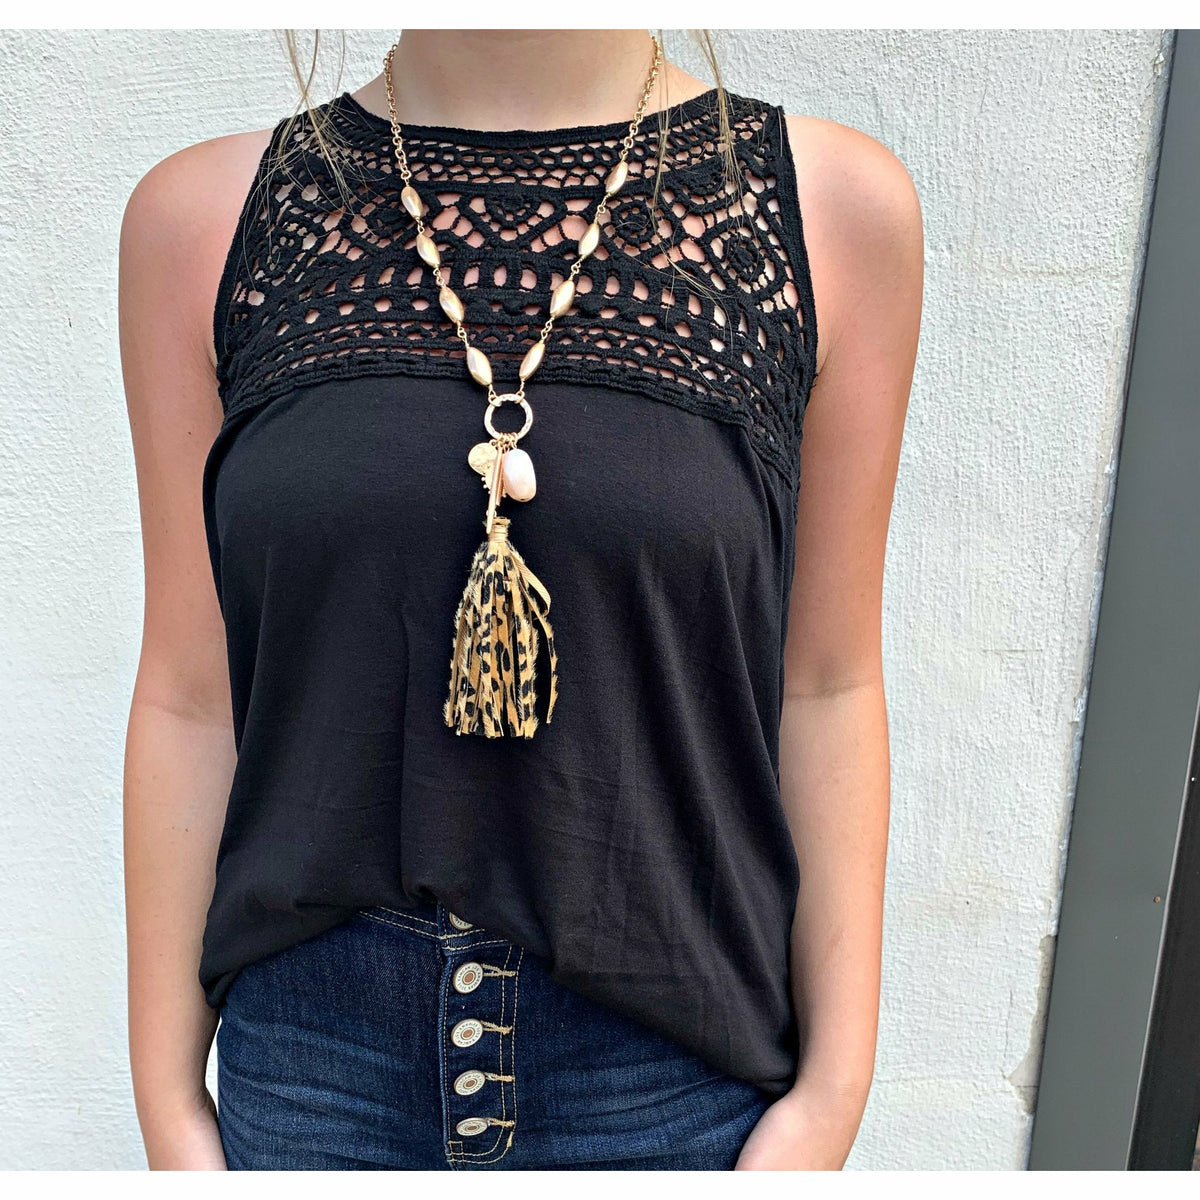 Crochet Black Boutique t-a-n-k